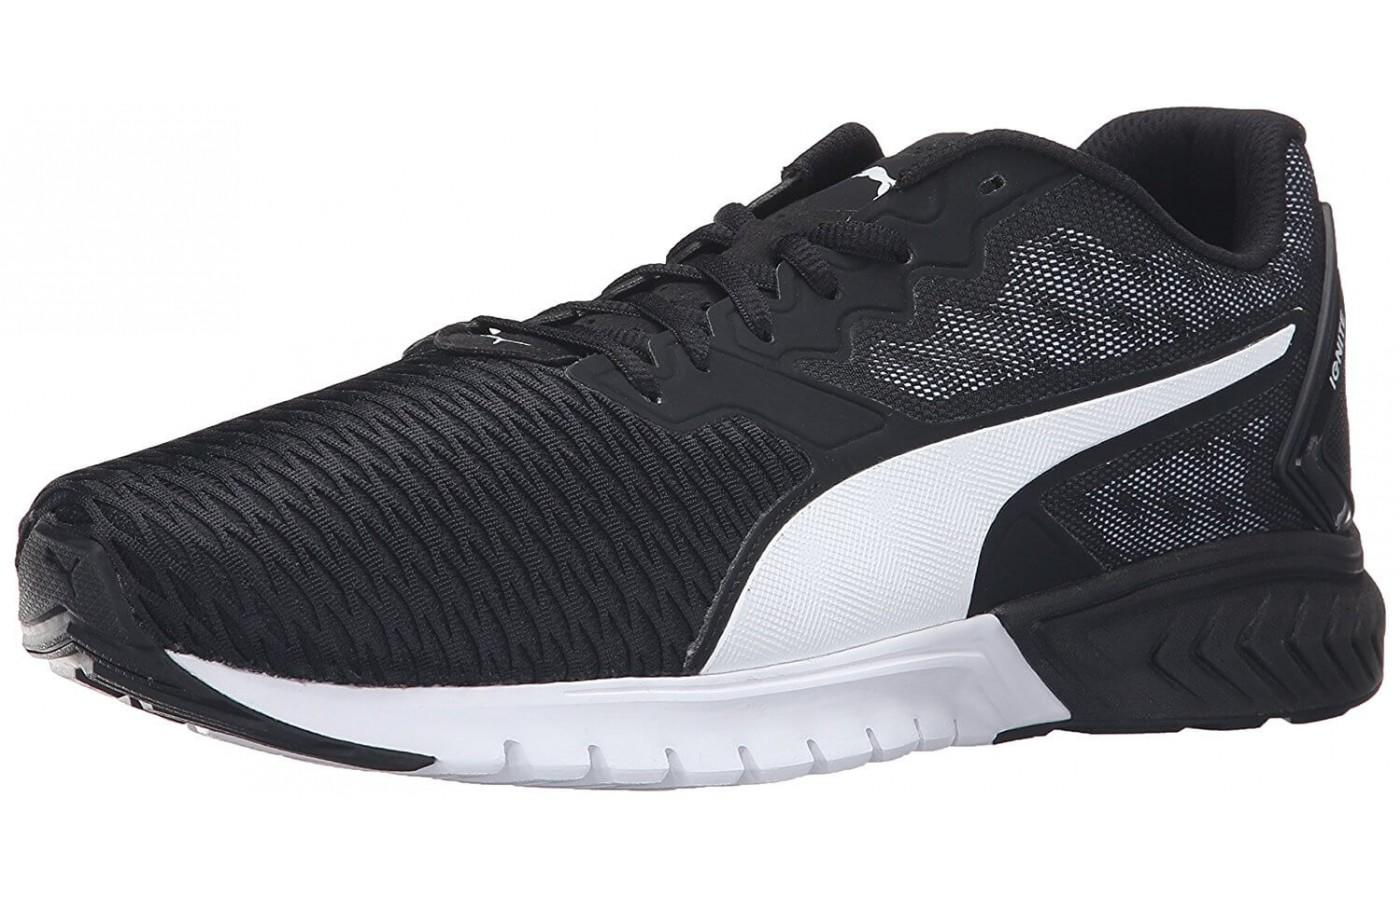 the Puma Ignite Dual is an affordable, stylish trainer ...